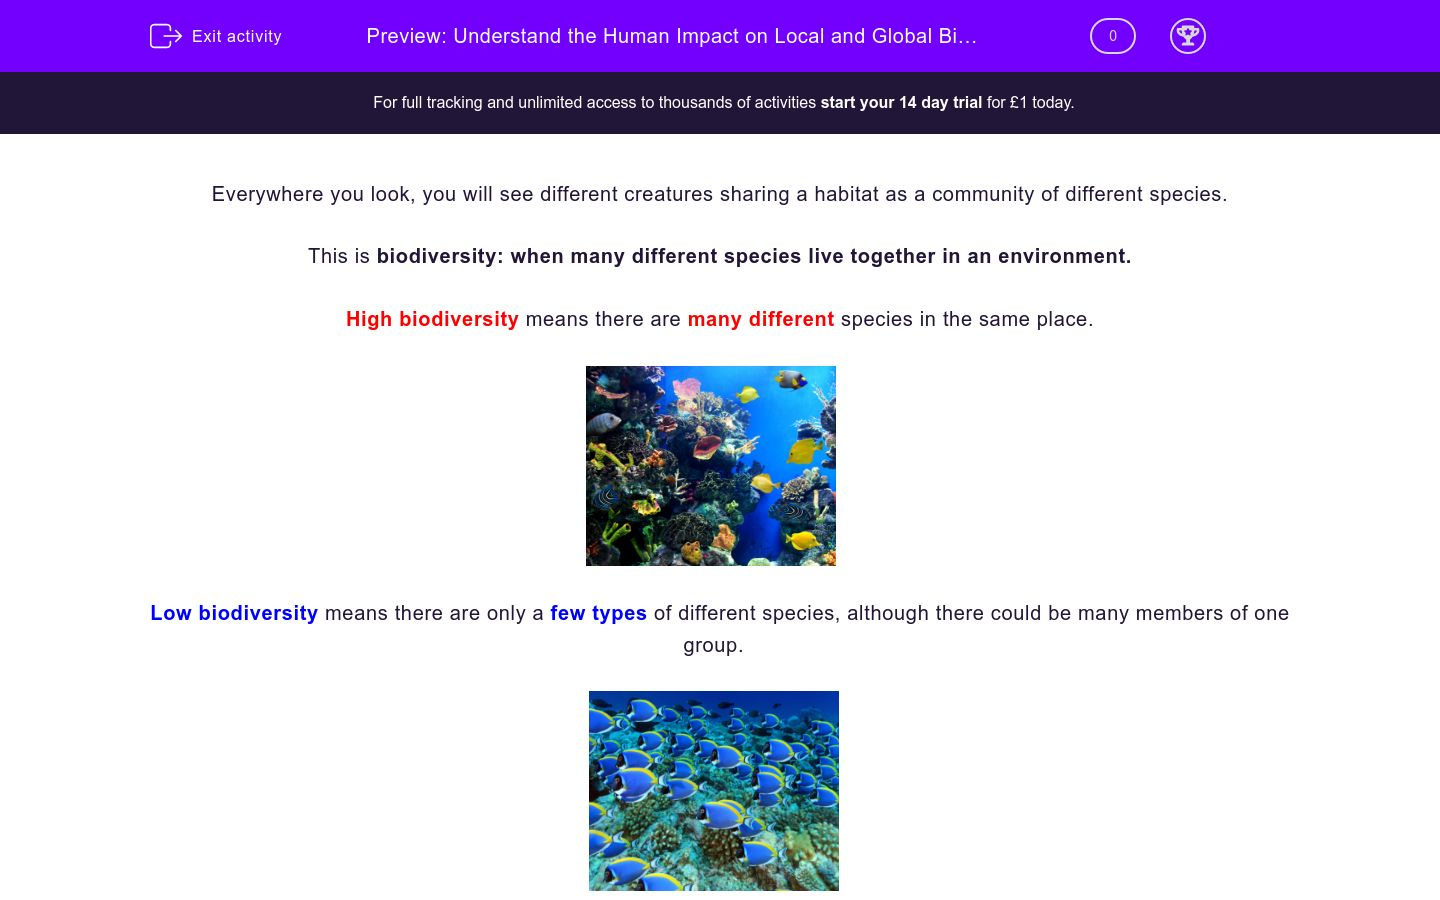 'Understand the Human Impact on Local and Global Biodiversity' worksheet